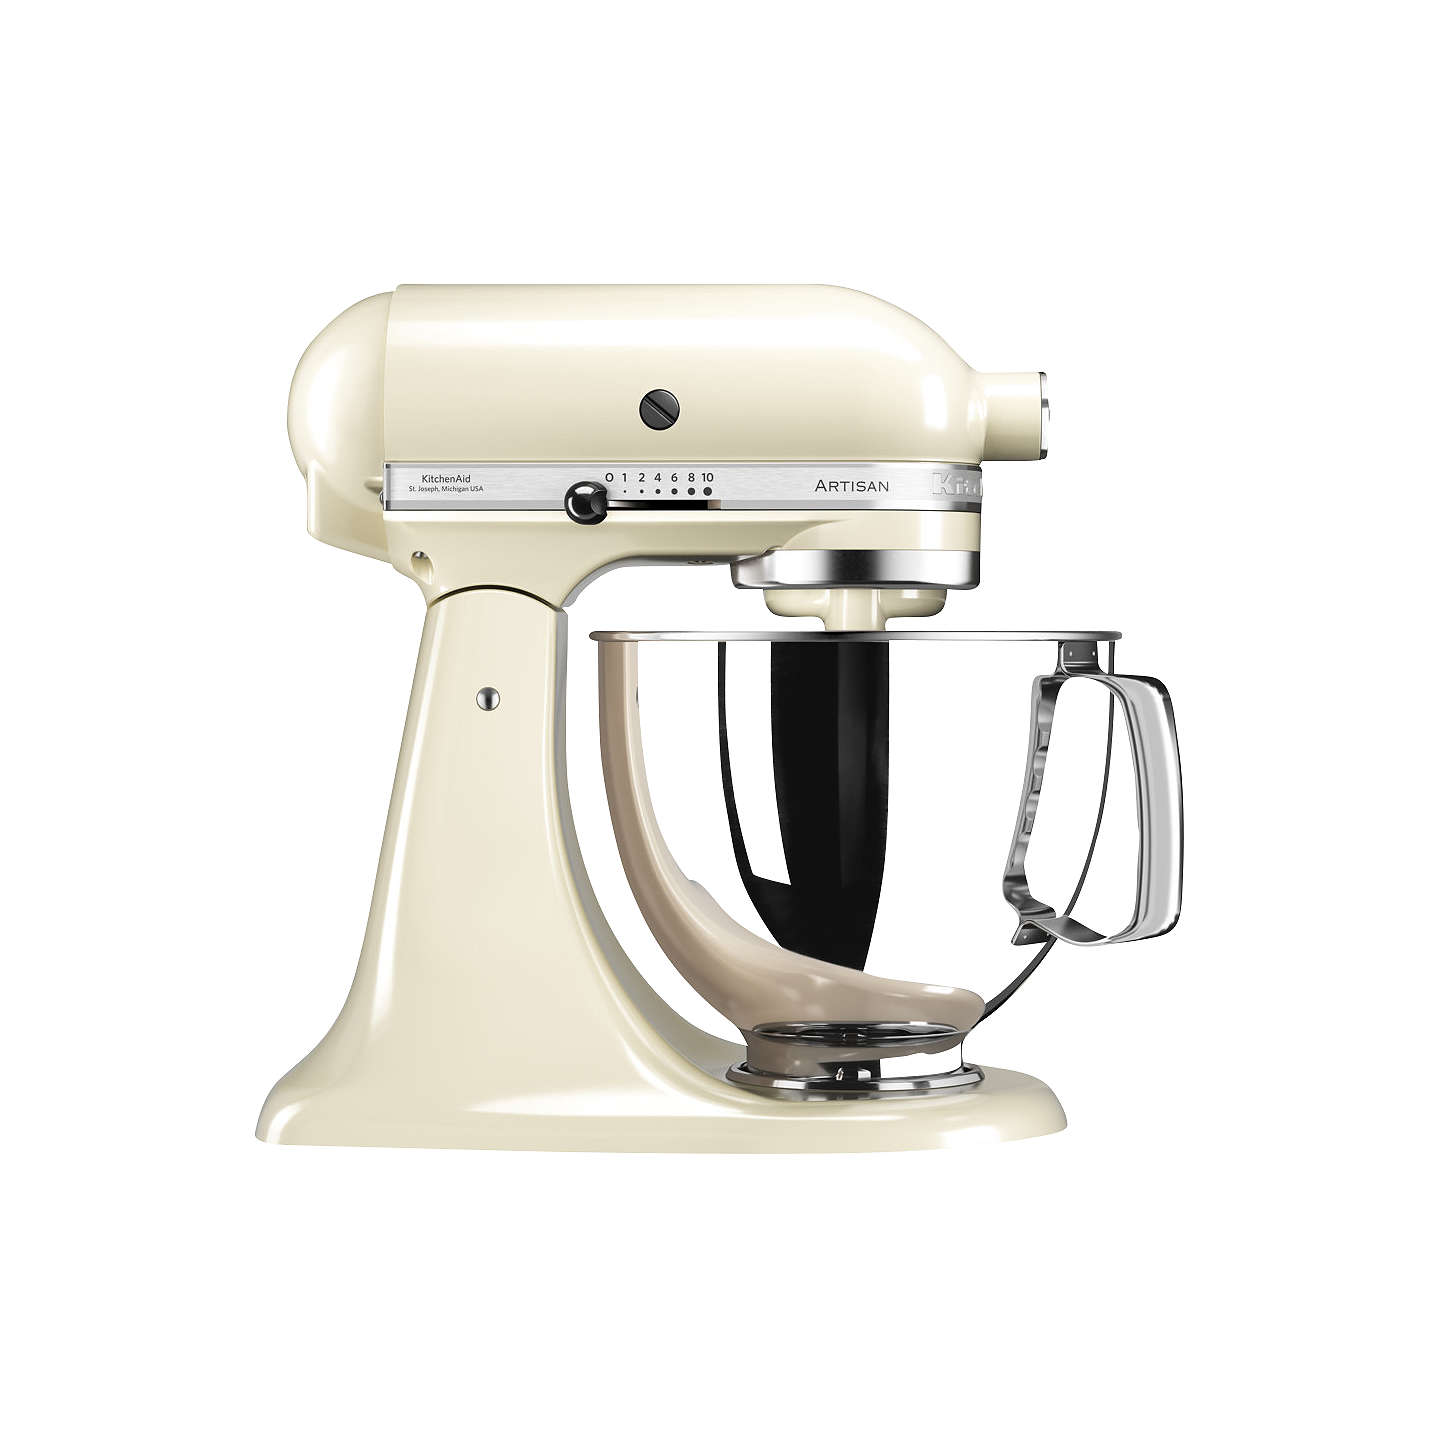 BuyKitchenAid 125 Artisan 4.8L Stand Mixer, Almond Cream Online at johnlewis.com